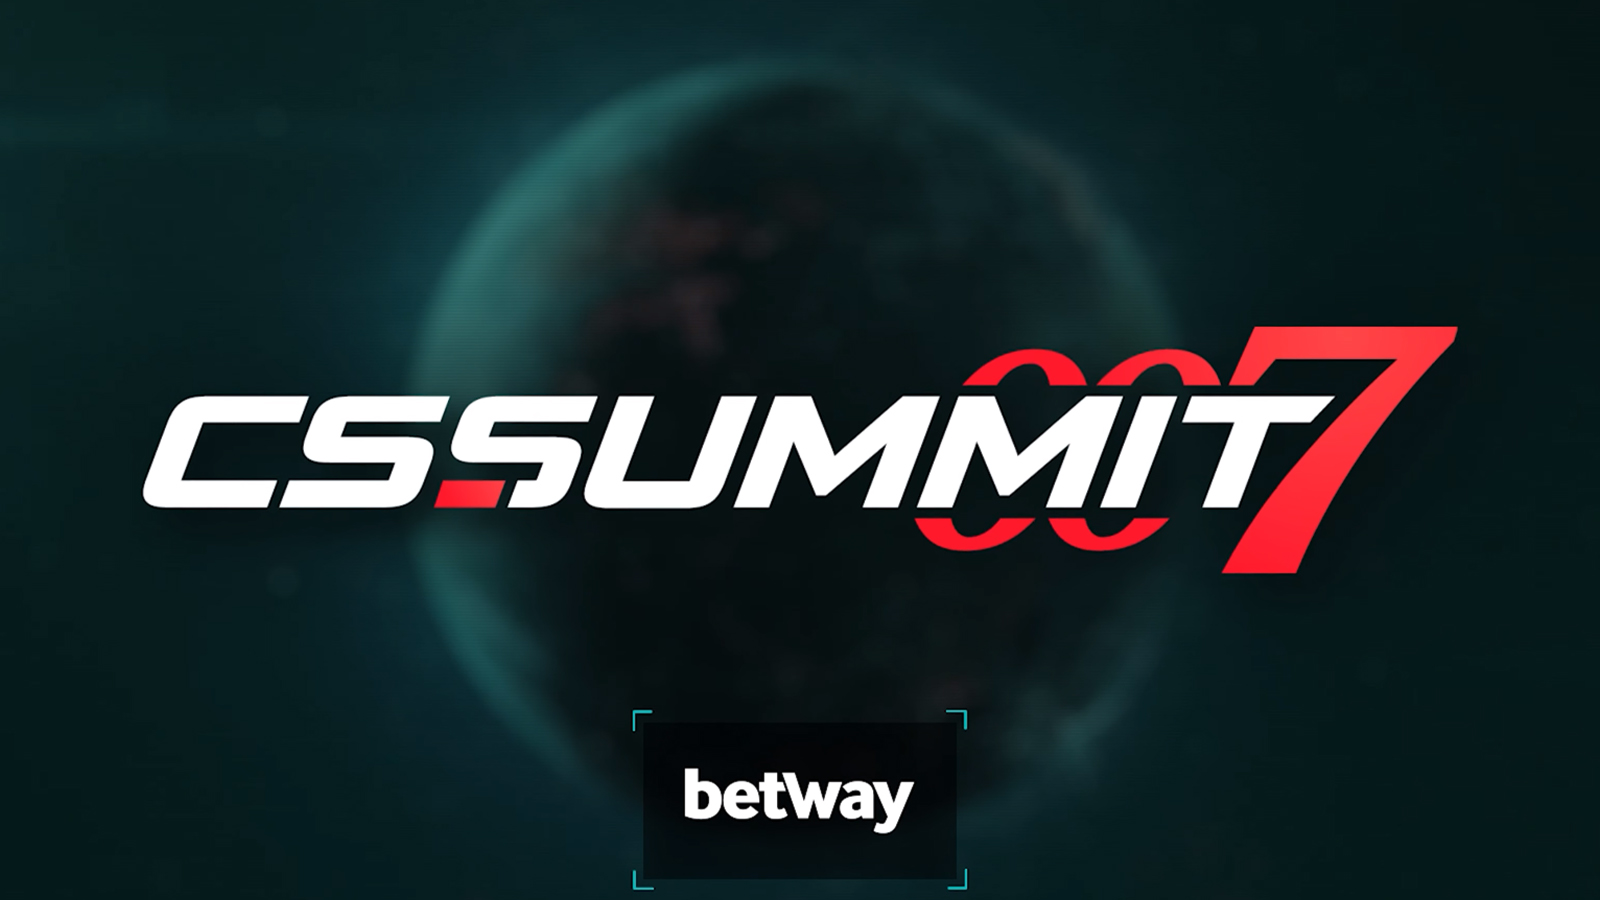 cs summit 7 csgo